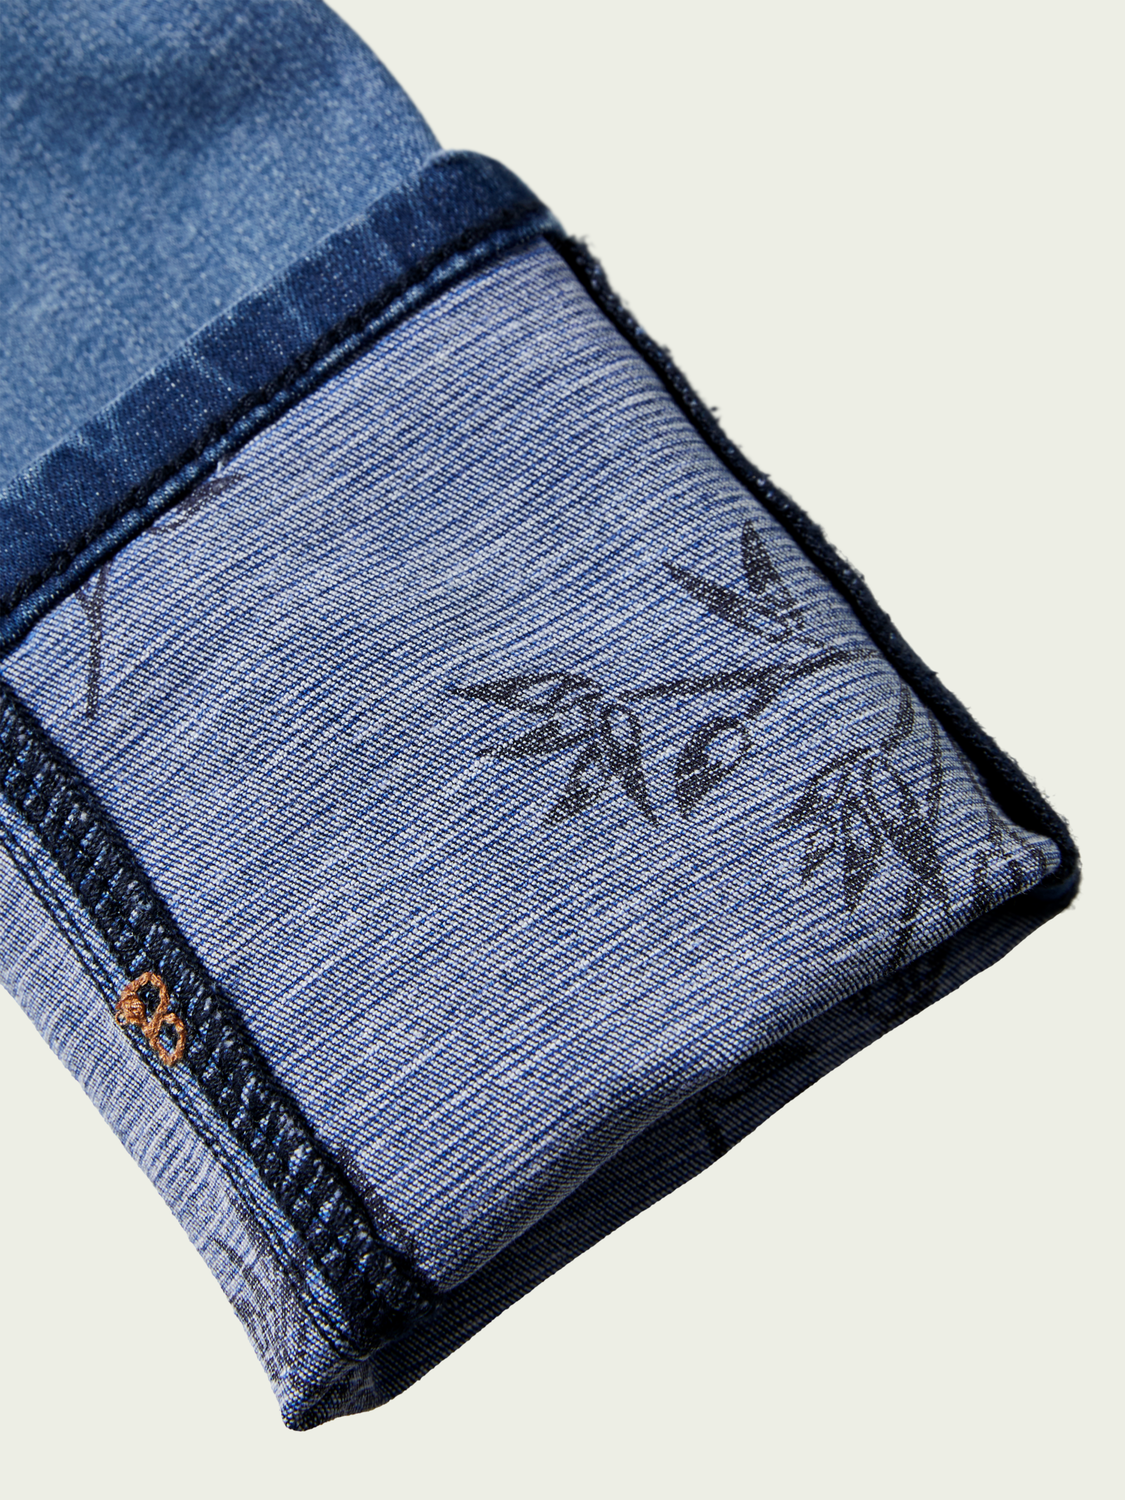 Enfant La Charmante – Moody Blue | Jeans high rise skinny fit